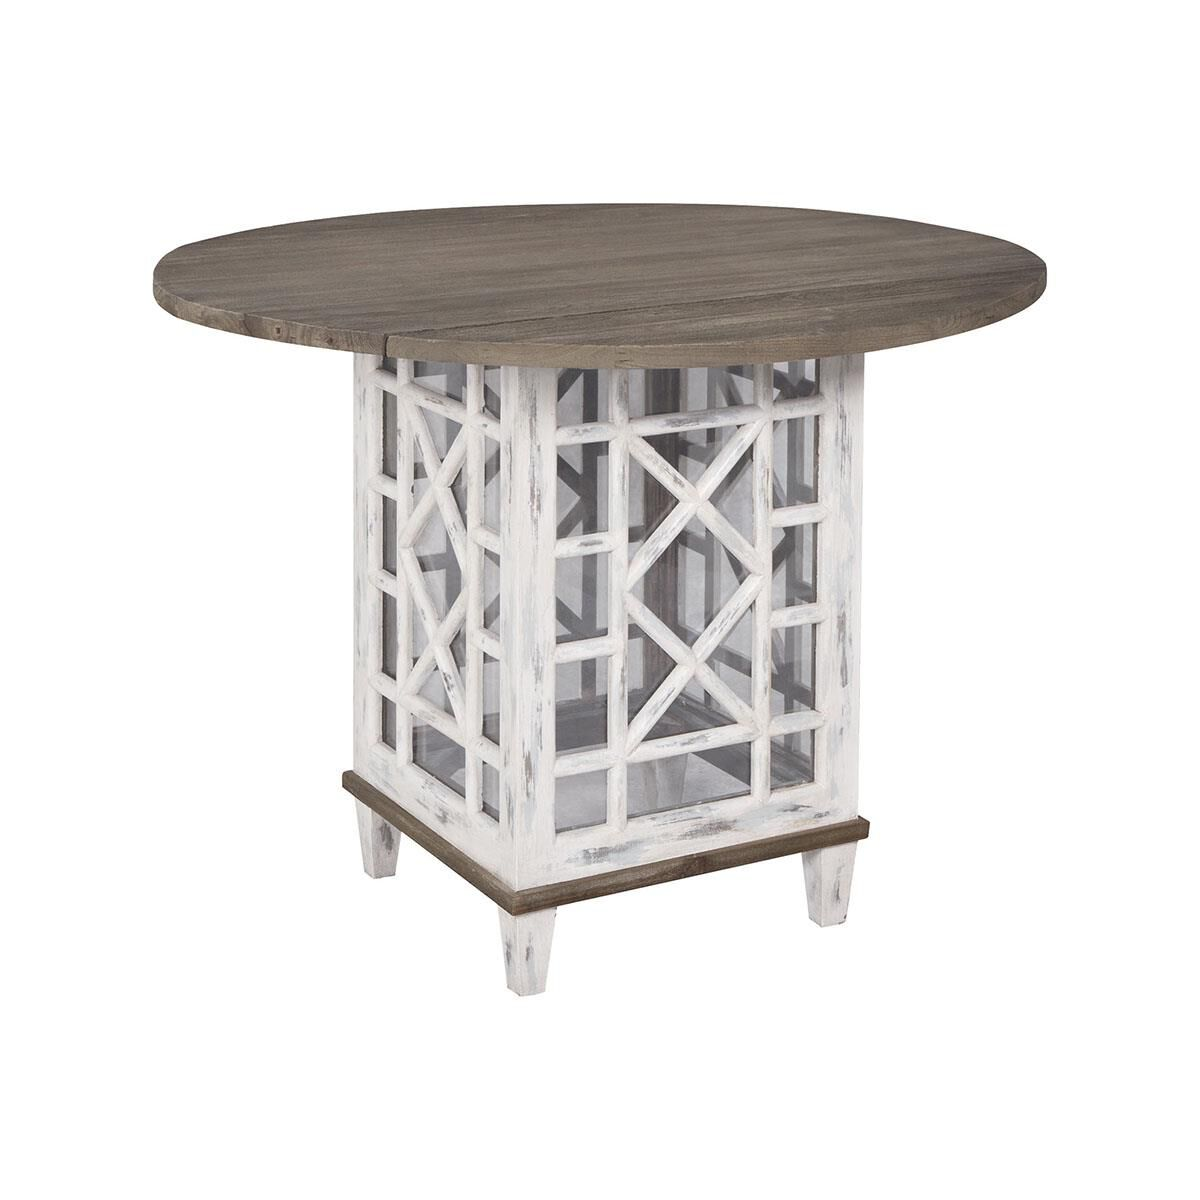 ELK Home Artifacts Dining Table Artifacts - 6117505 - Transitional